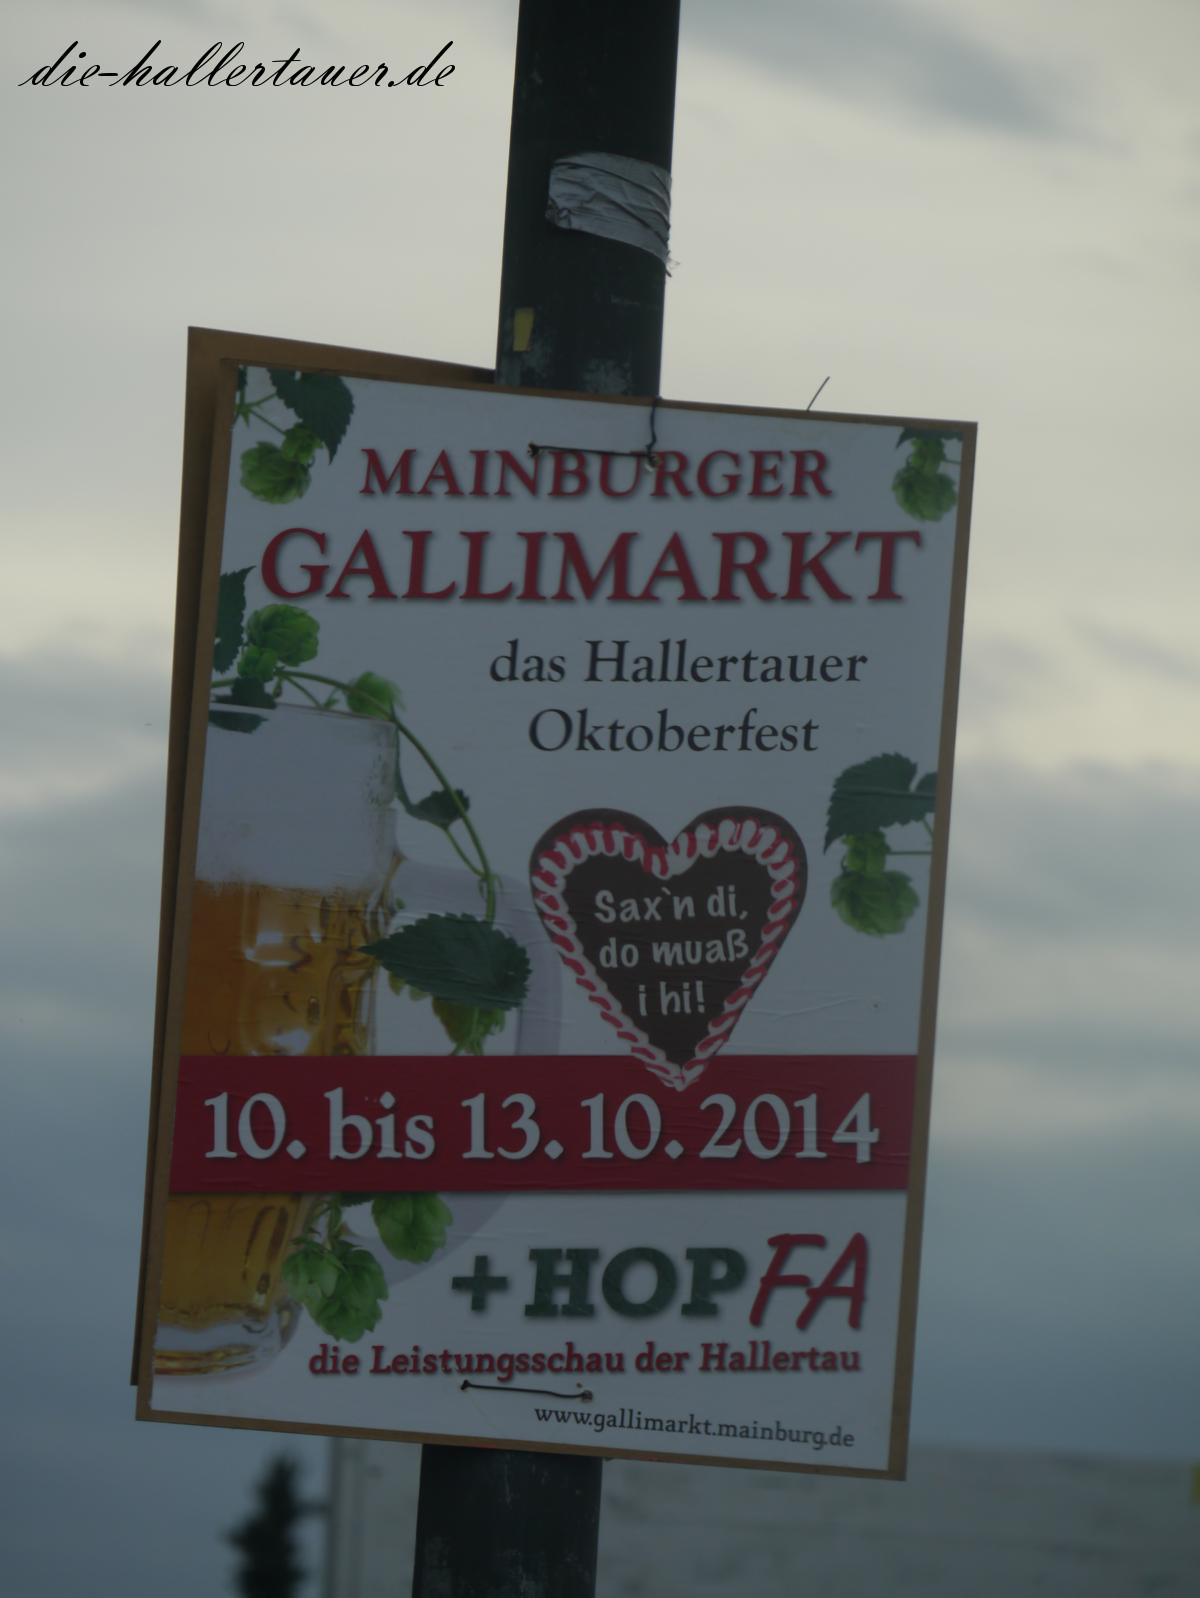 Mainburger Gallimarkt